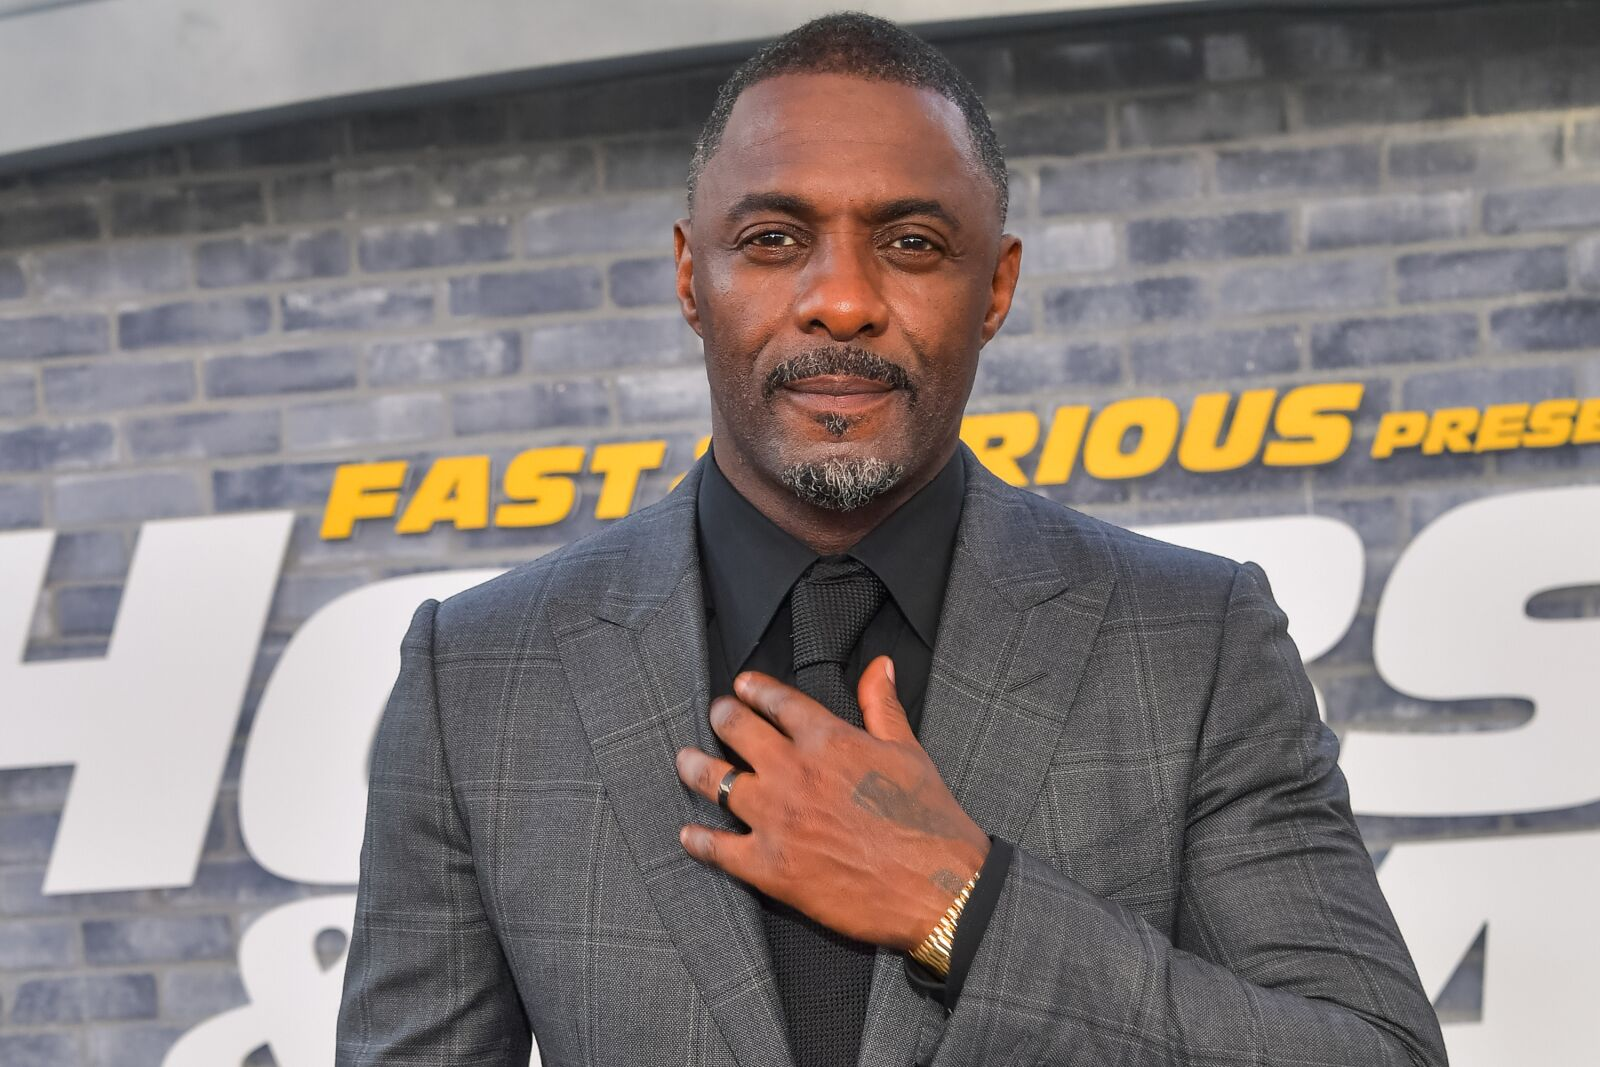 The Suicide Squad: New rumor has Idris Elba playing Vigilante